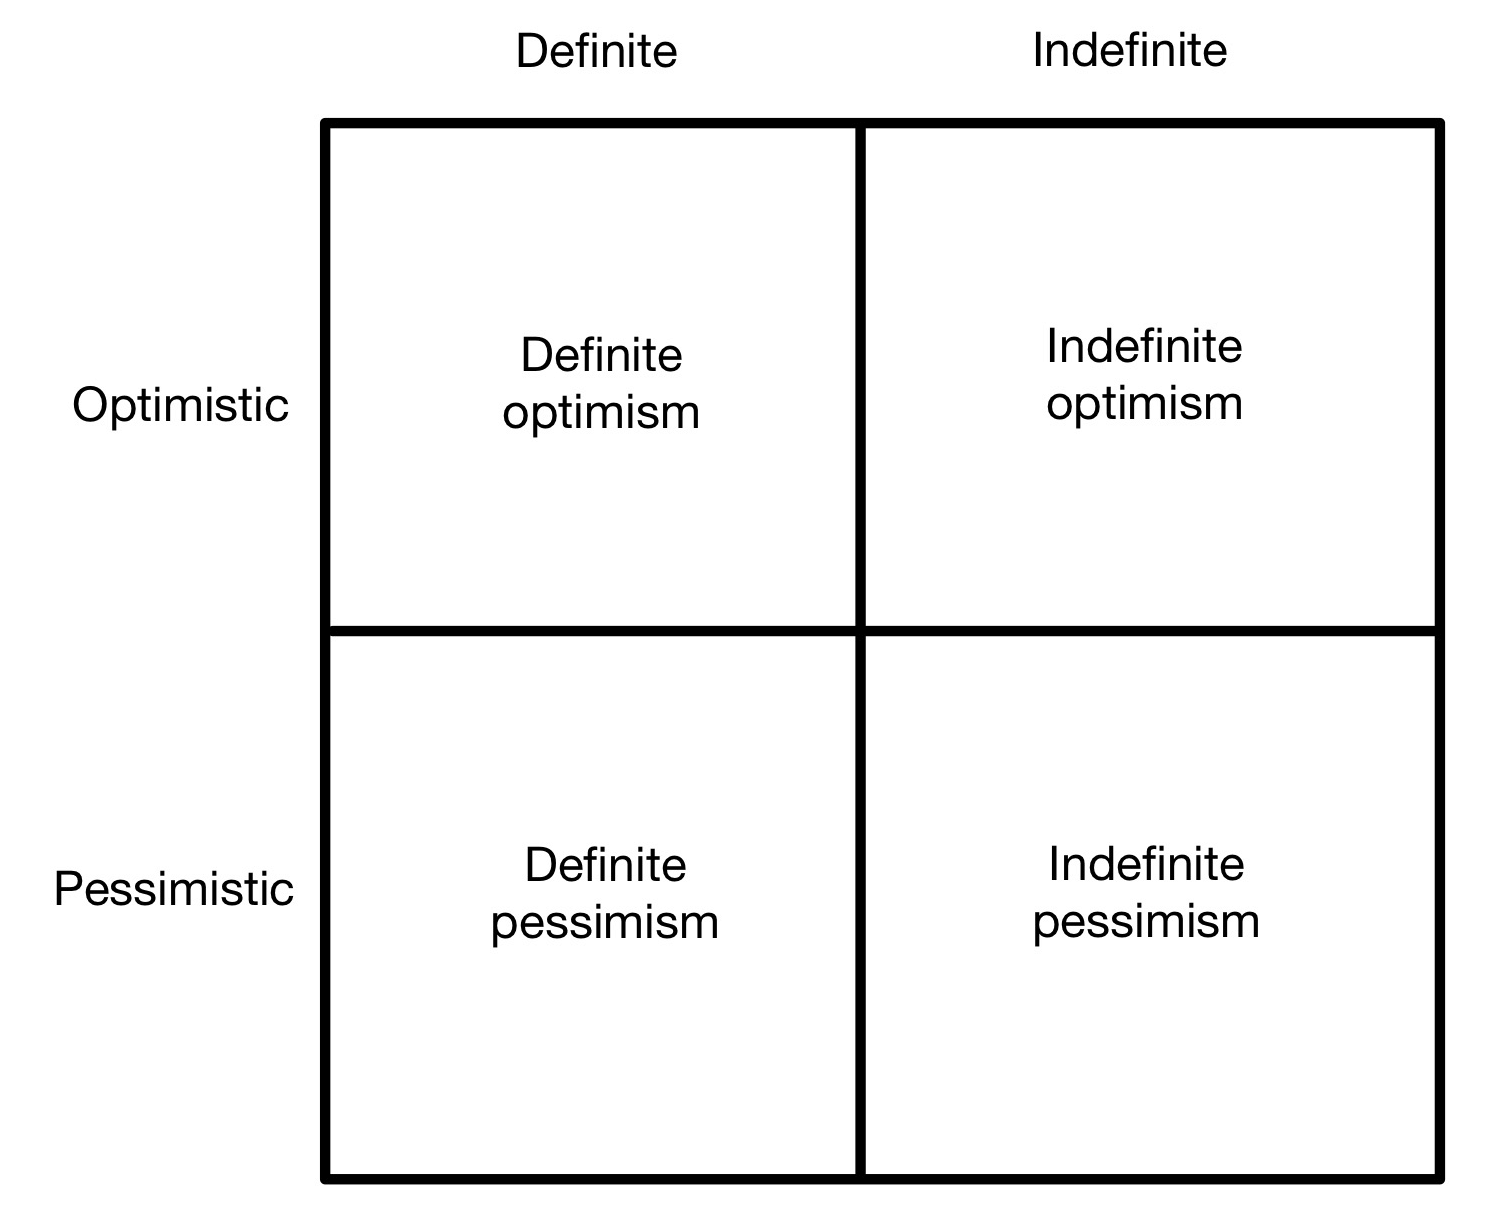 Definite versus indefinite thinking quadrants